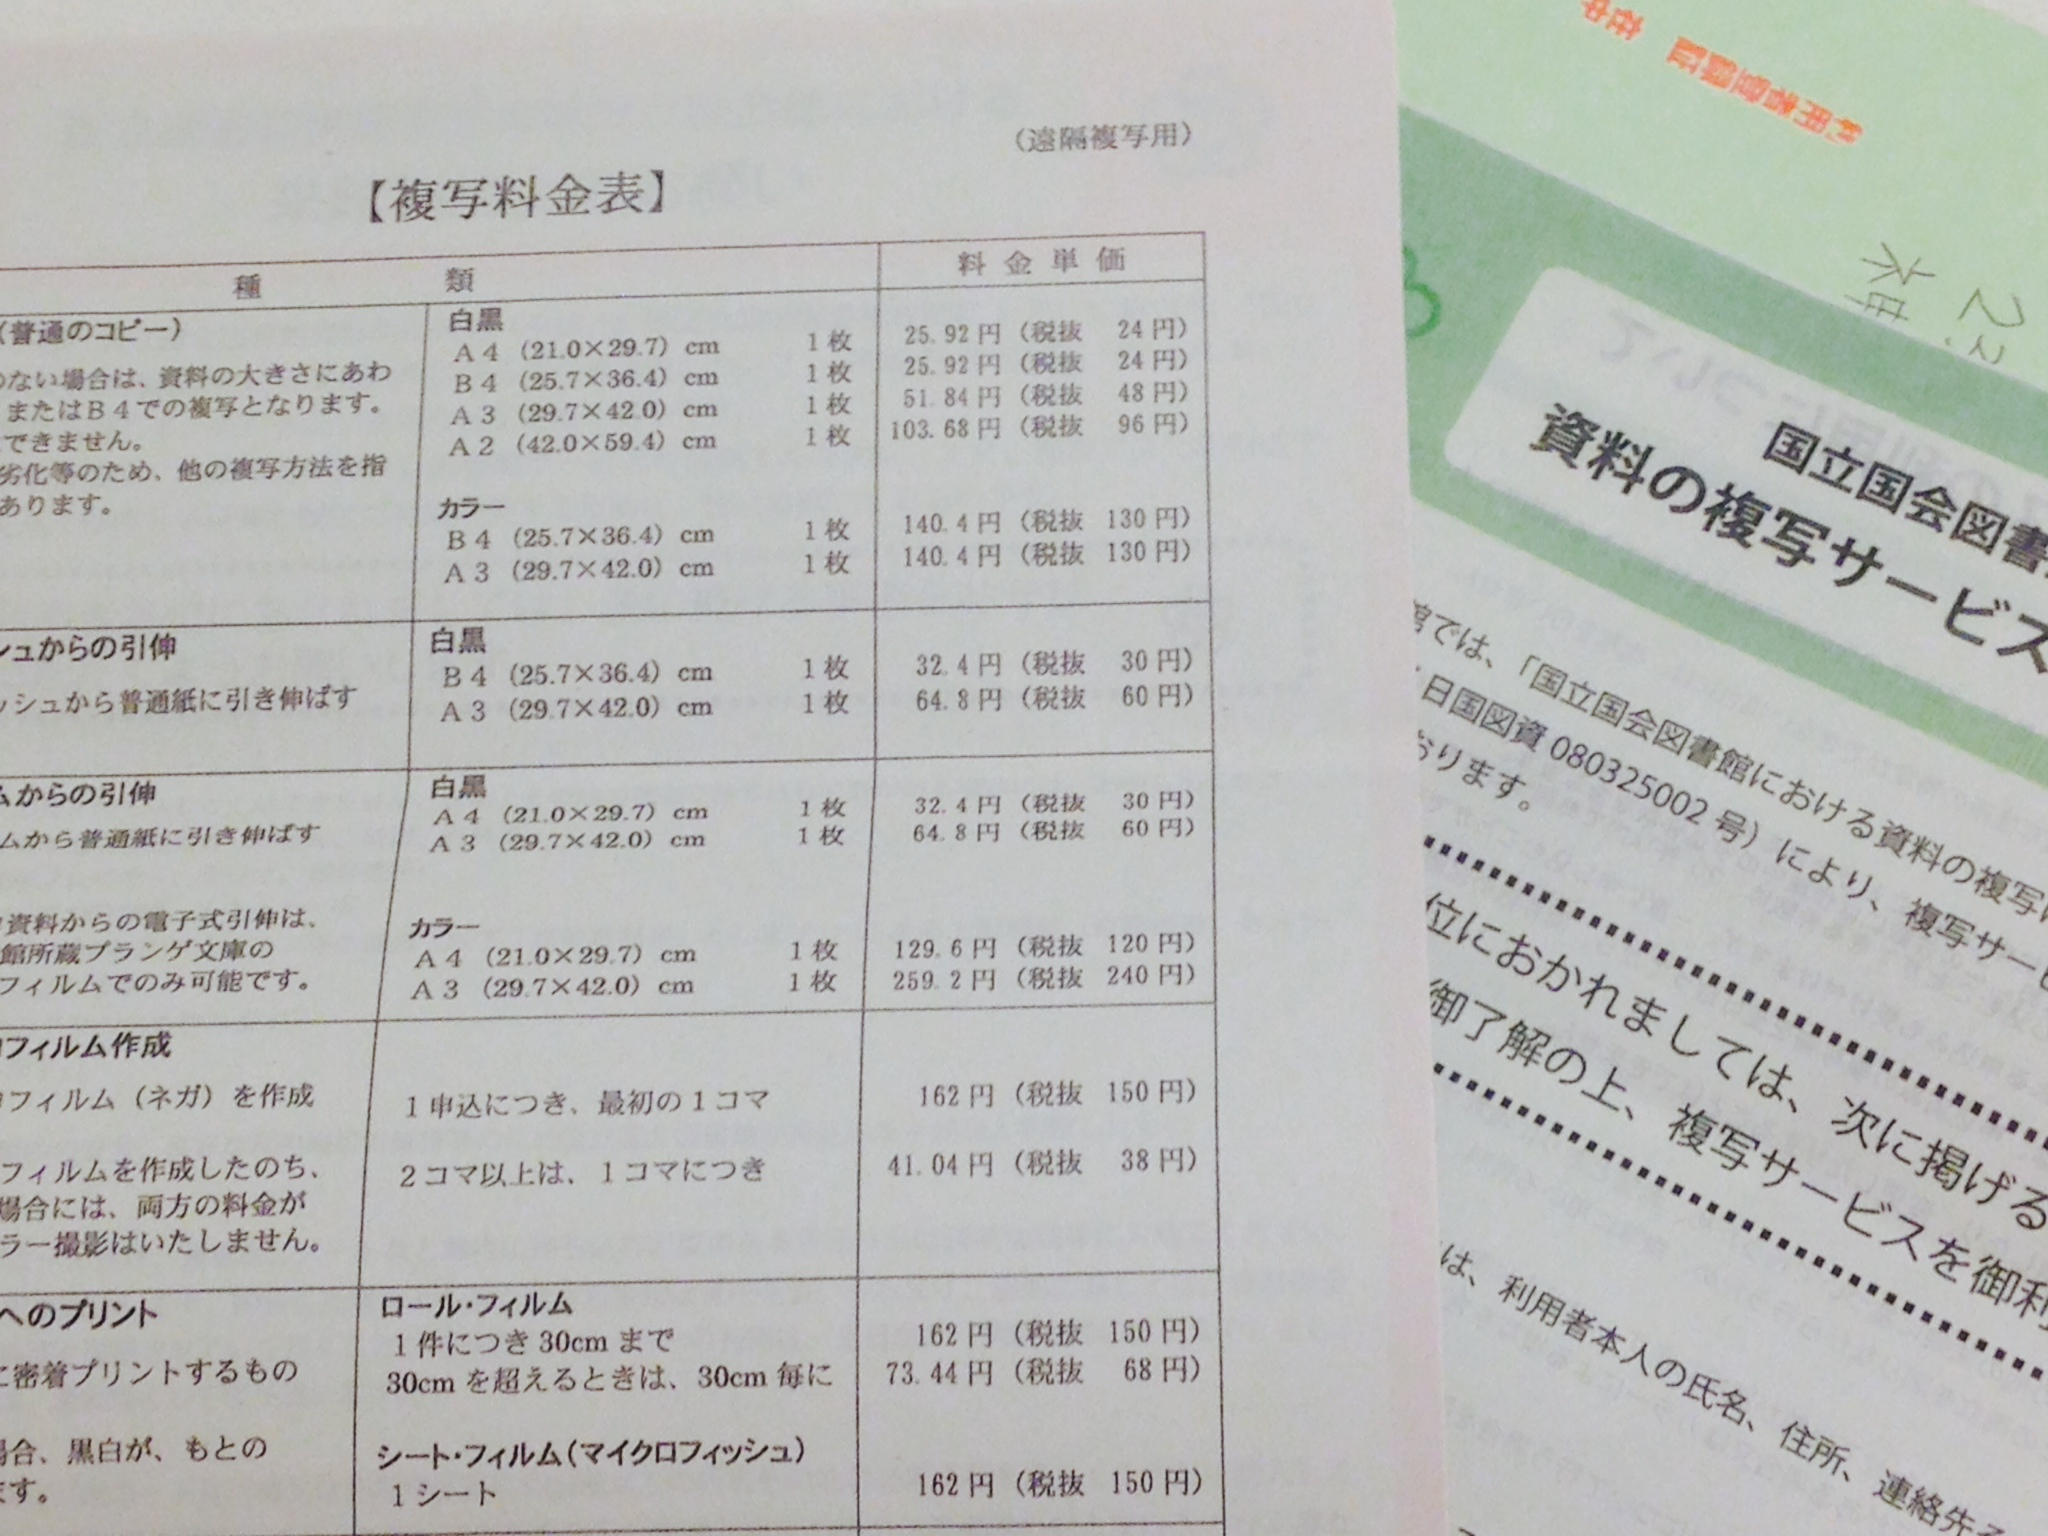 2014-09-18 id from national diet library